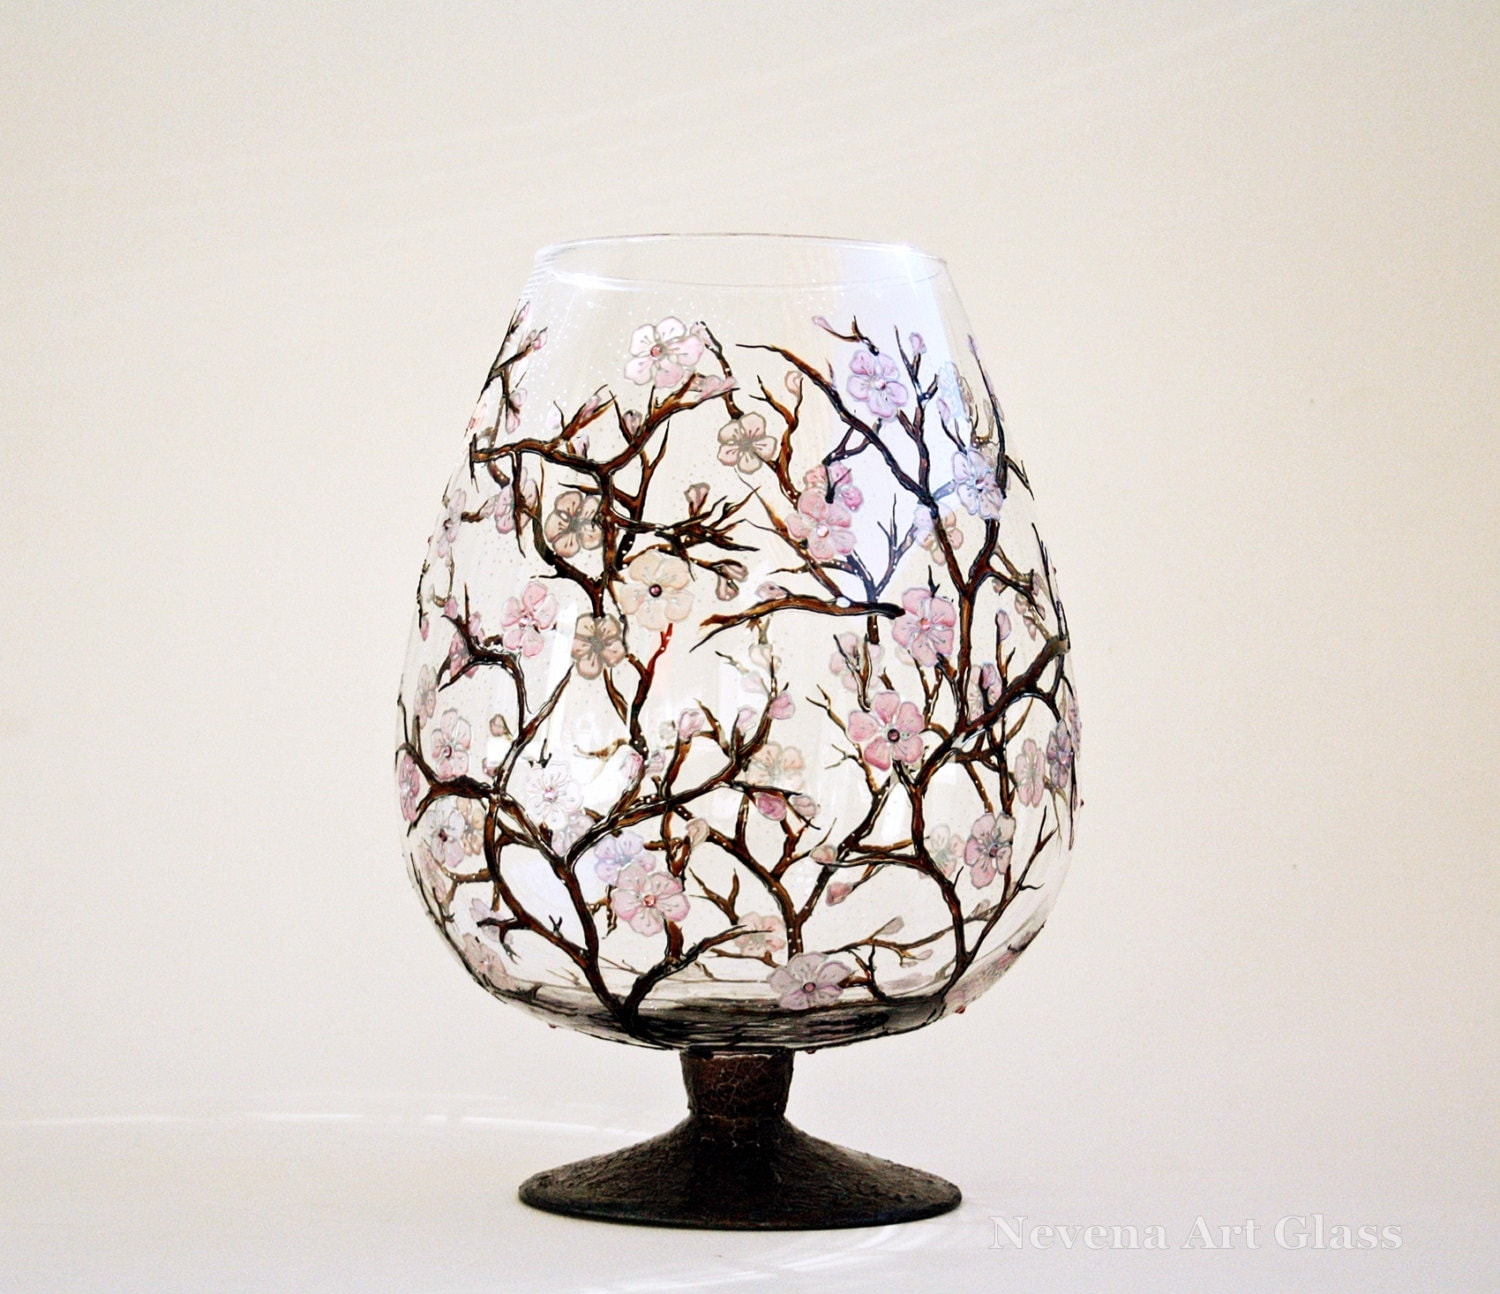 Sakura Cherry Blossom Hand Painted Glass Vase Centerpiece